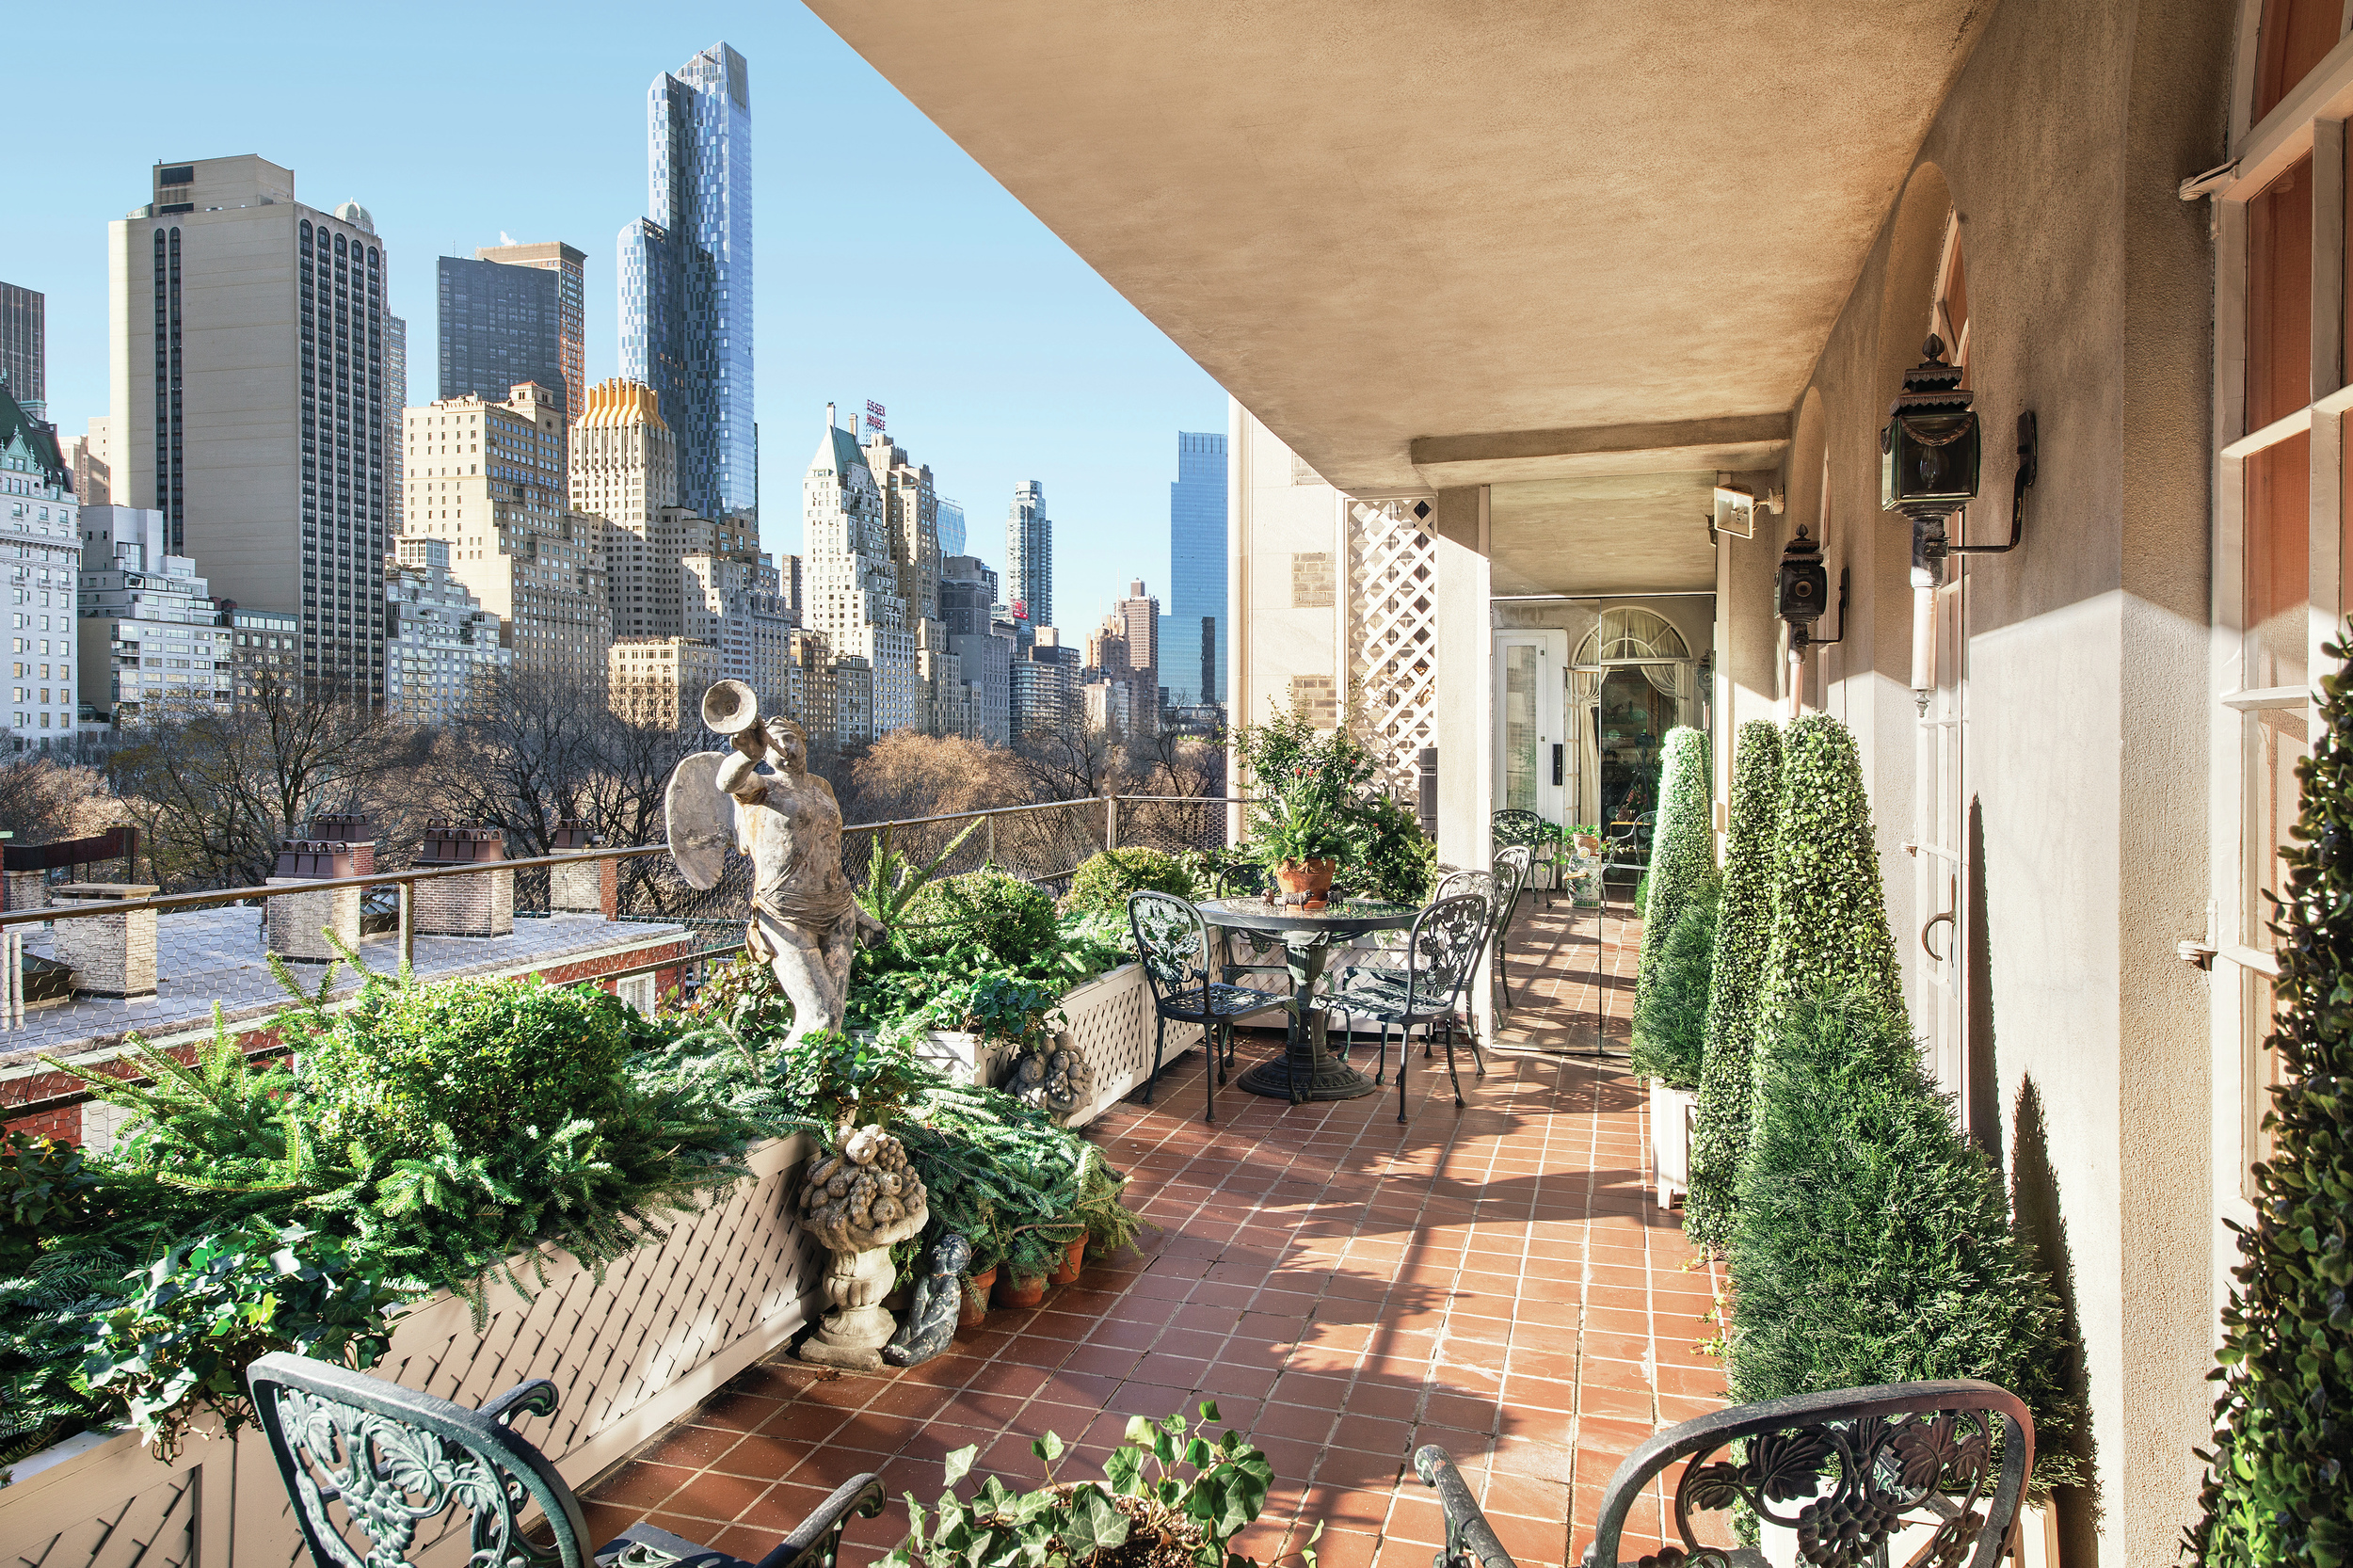 Joan rivers 39 fifth avenue 39 palace 39 sells for 28 million for The terrace group